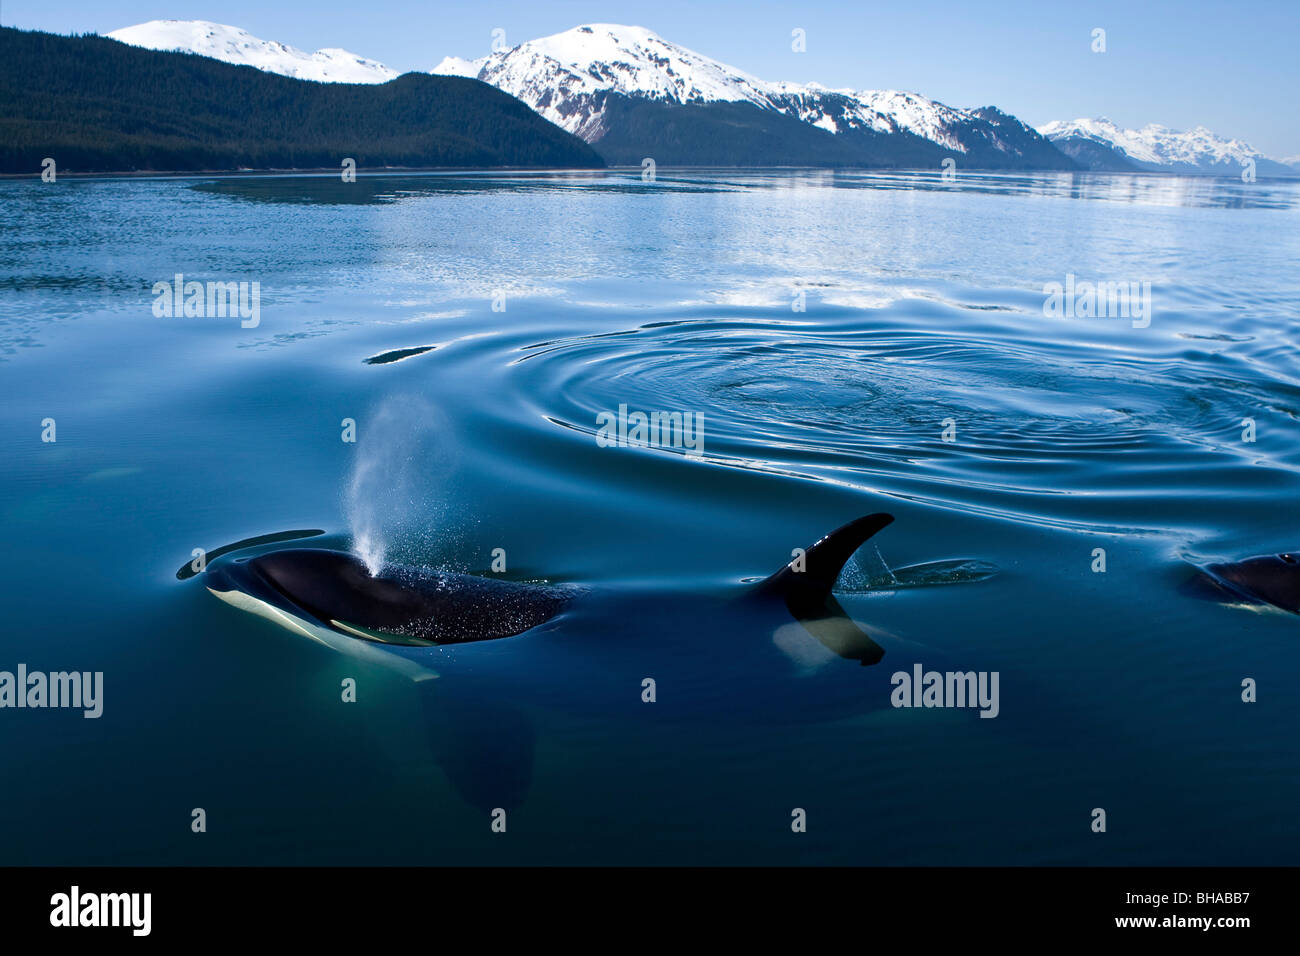 Orca Whales surface in Lynn Canal with the Chilkat Mountains in the distance, Inside Passage, Alaska - Stock Image